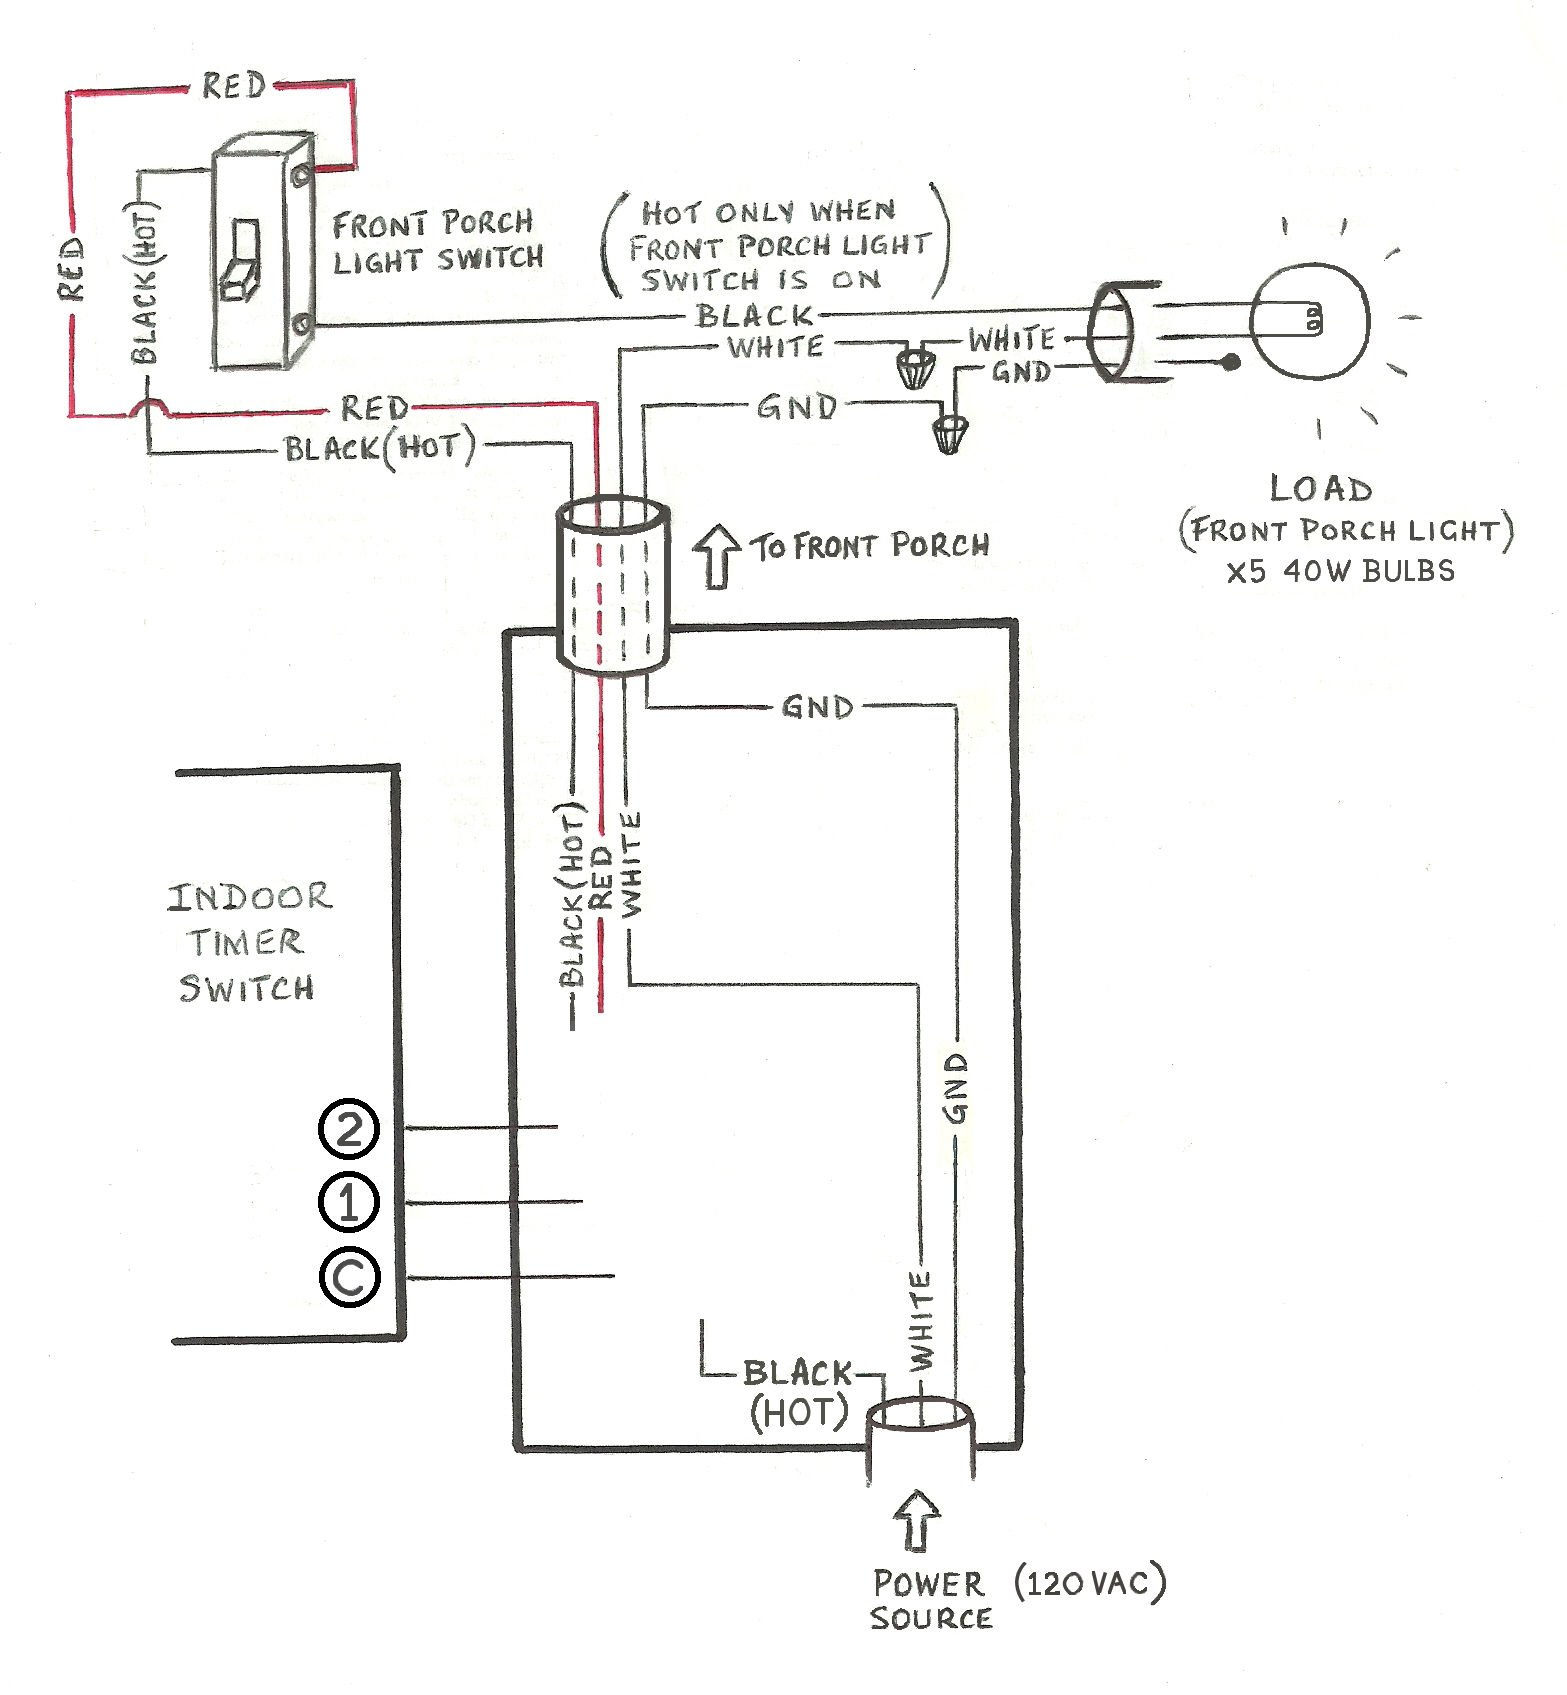 hight resolution of dimmer switch 6683 wiring wiring diagram technic dimmer switch 6683 wiring